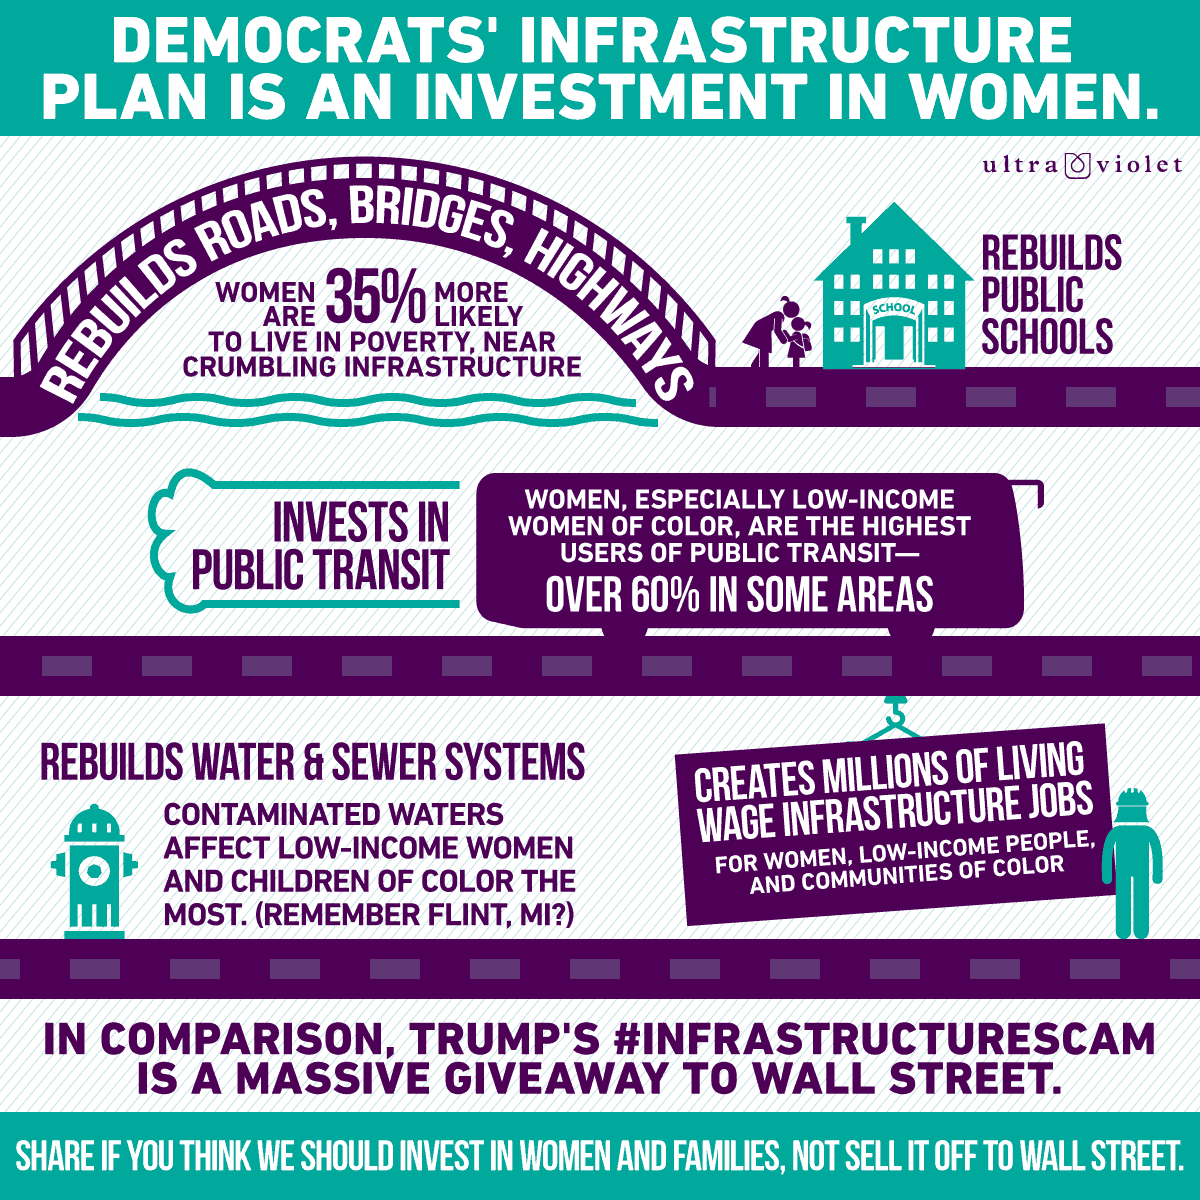 Whose infrastructure plan is better for women?